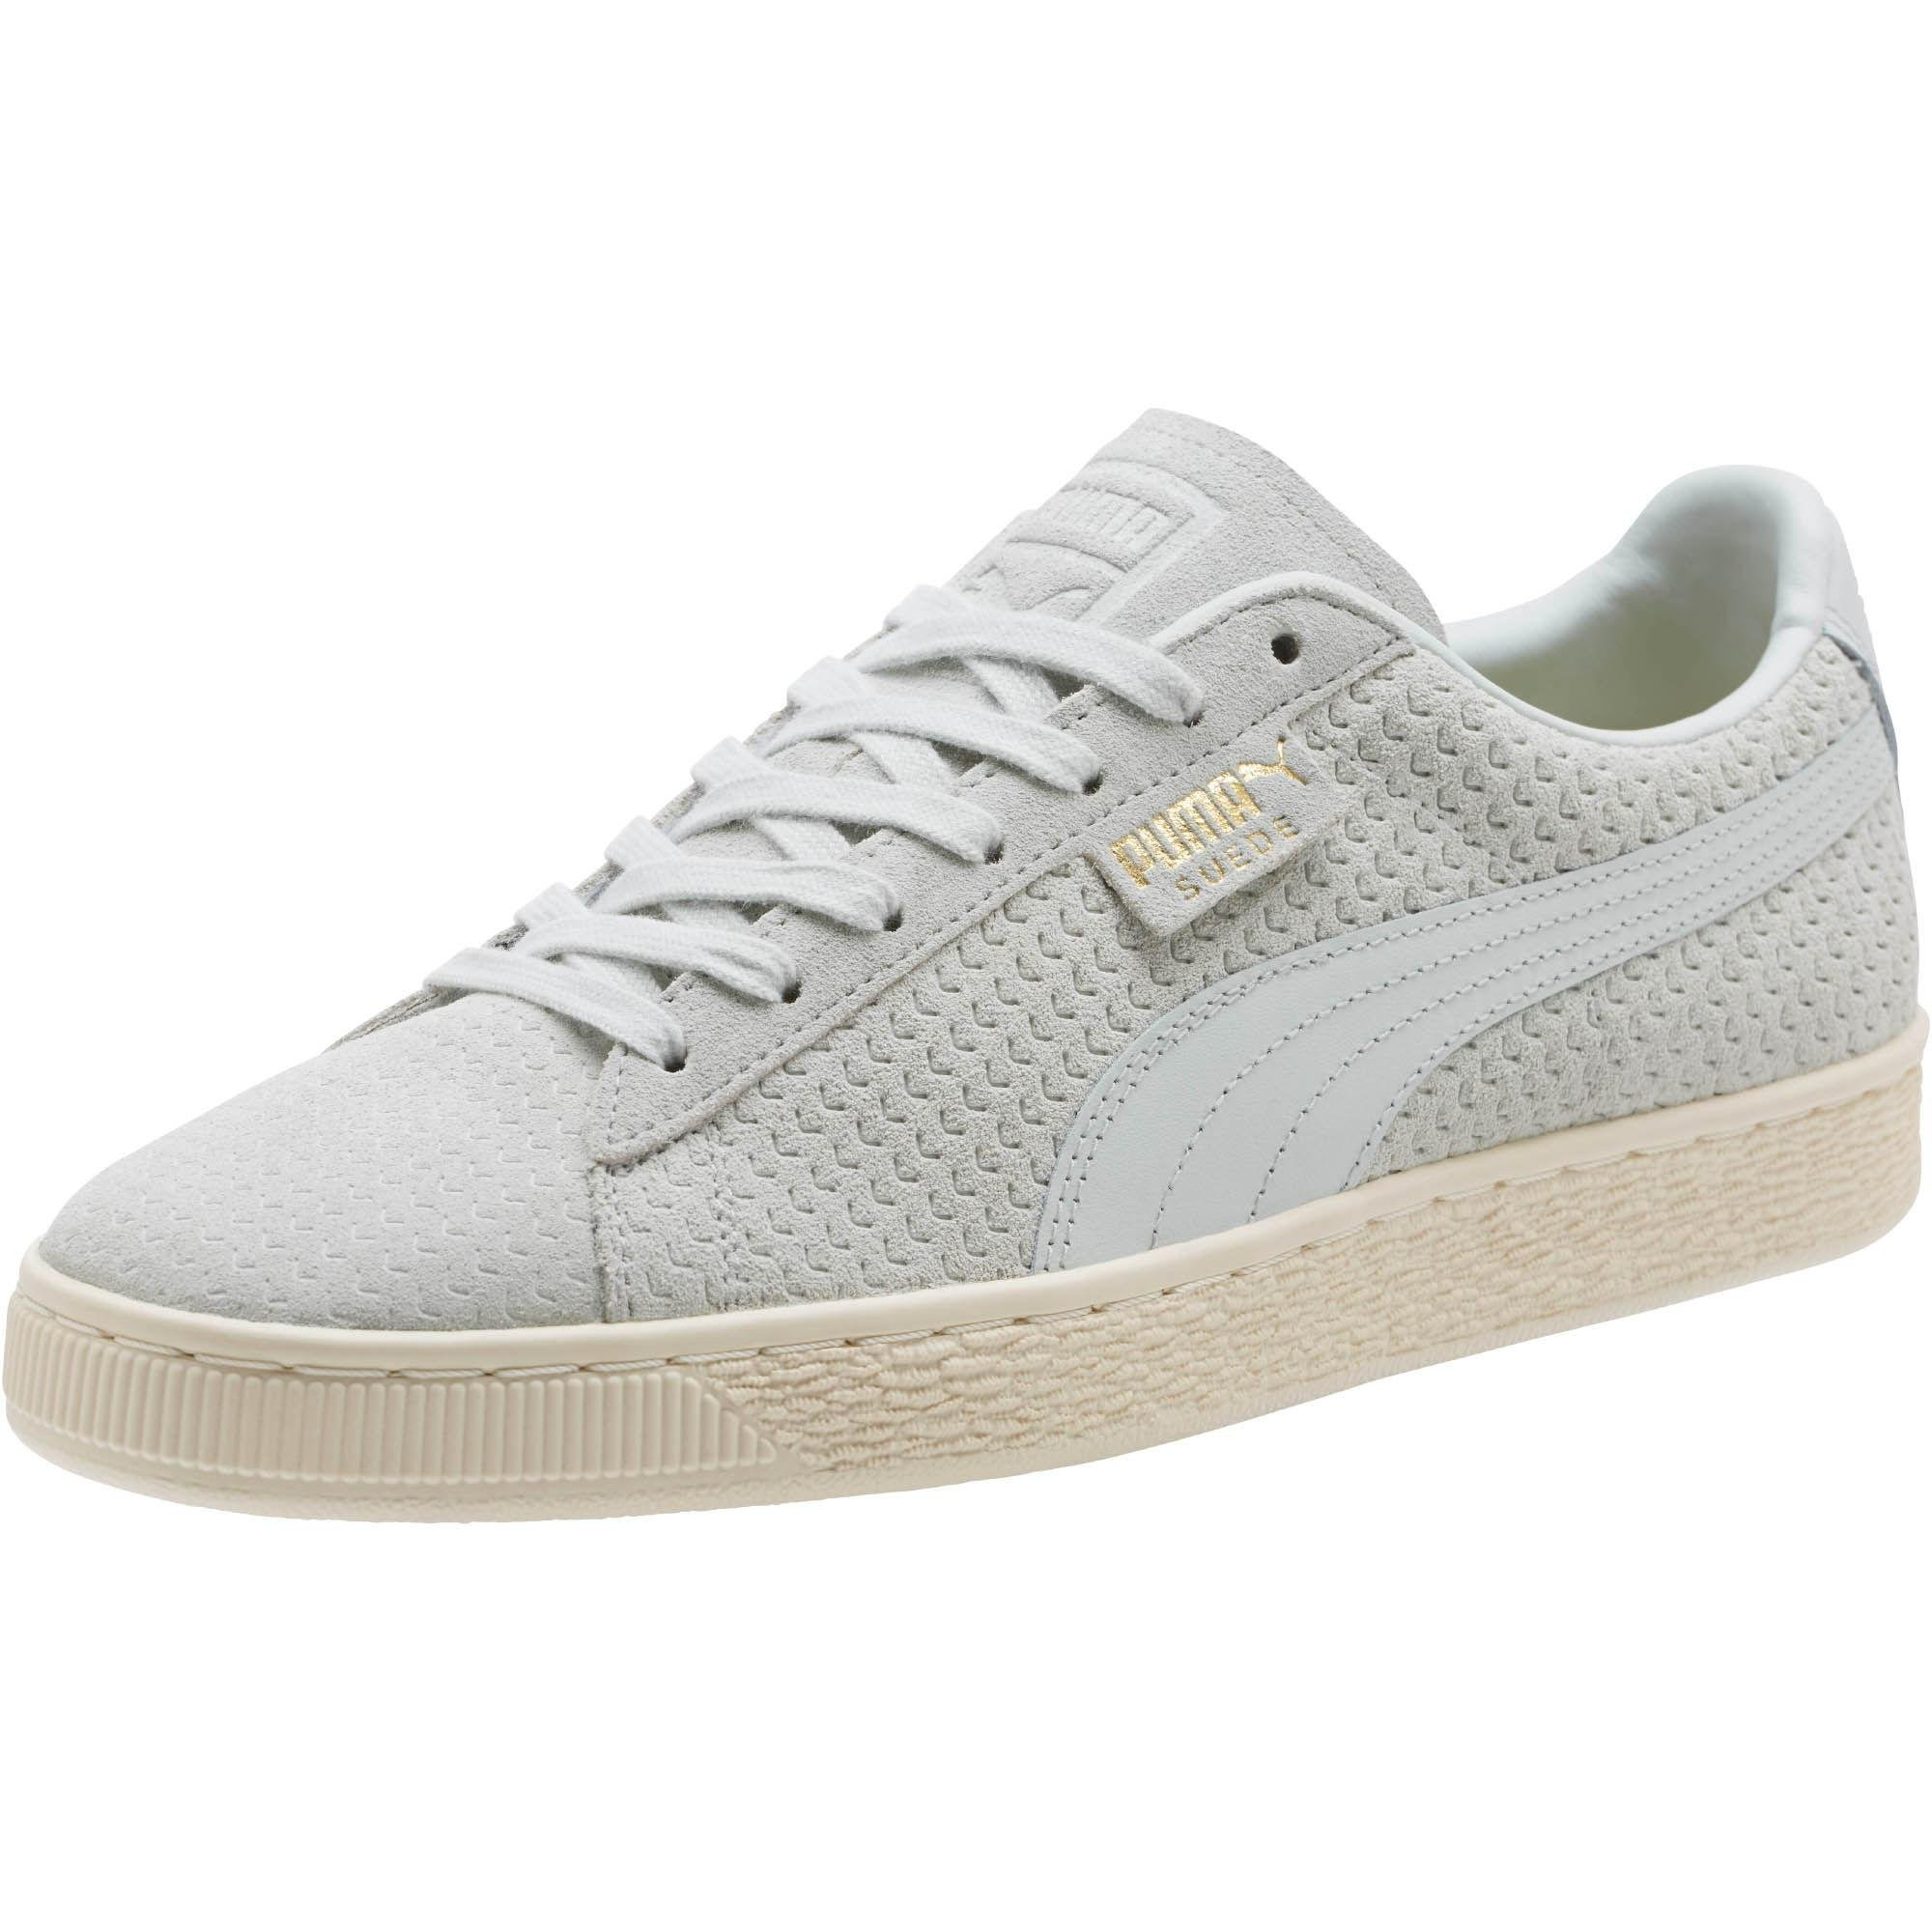 d3337266311689 Lyst - PUMA Suede Classic Perforation Sneakers in White for Men